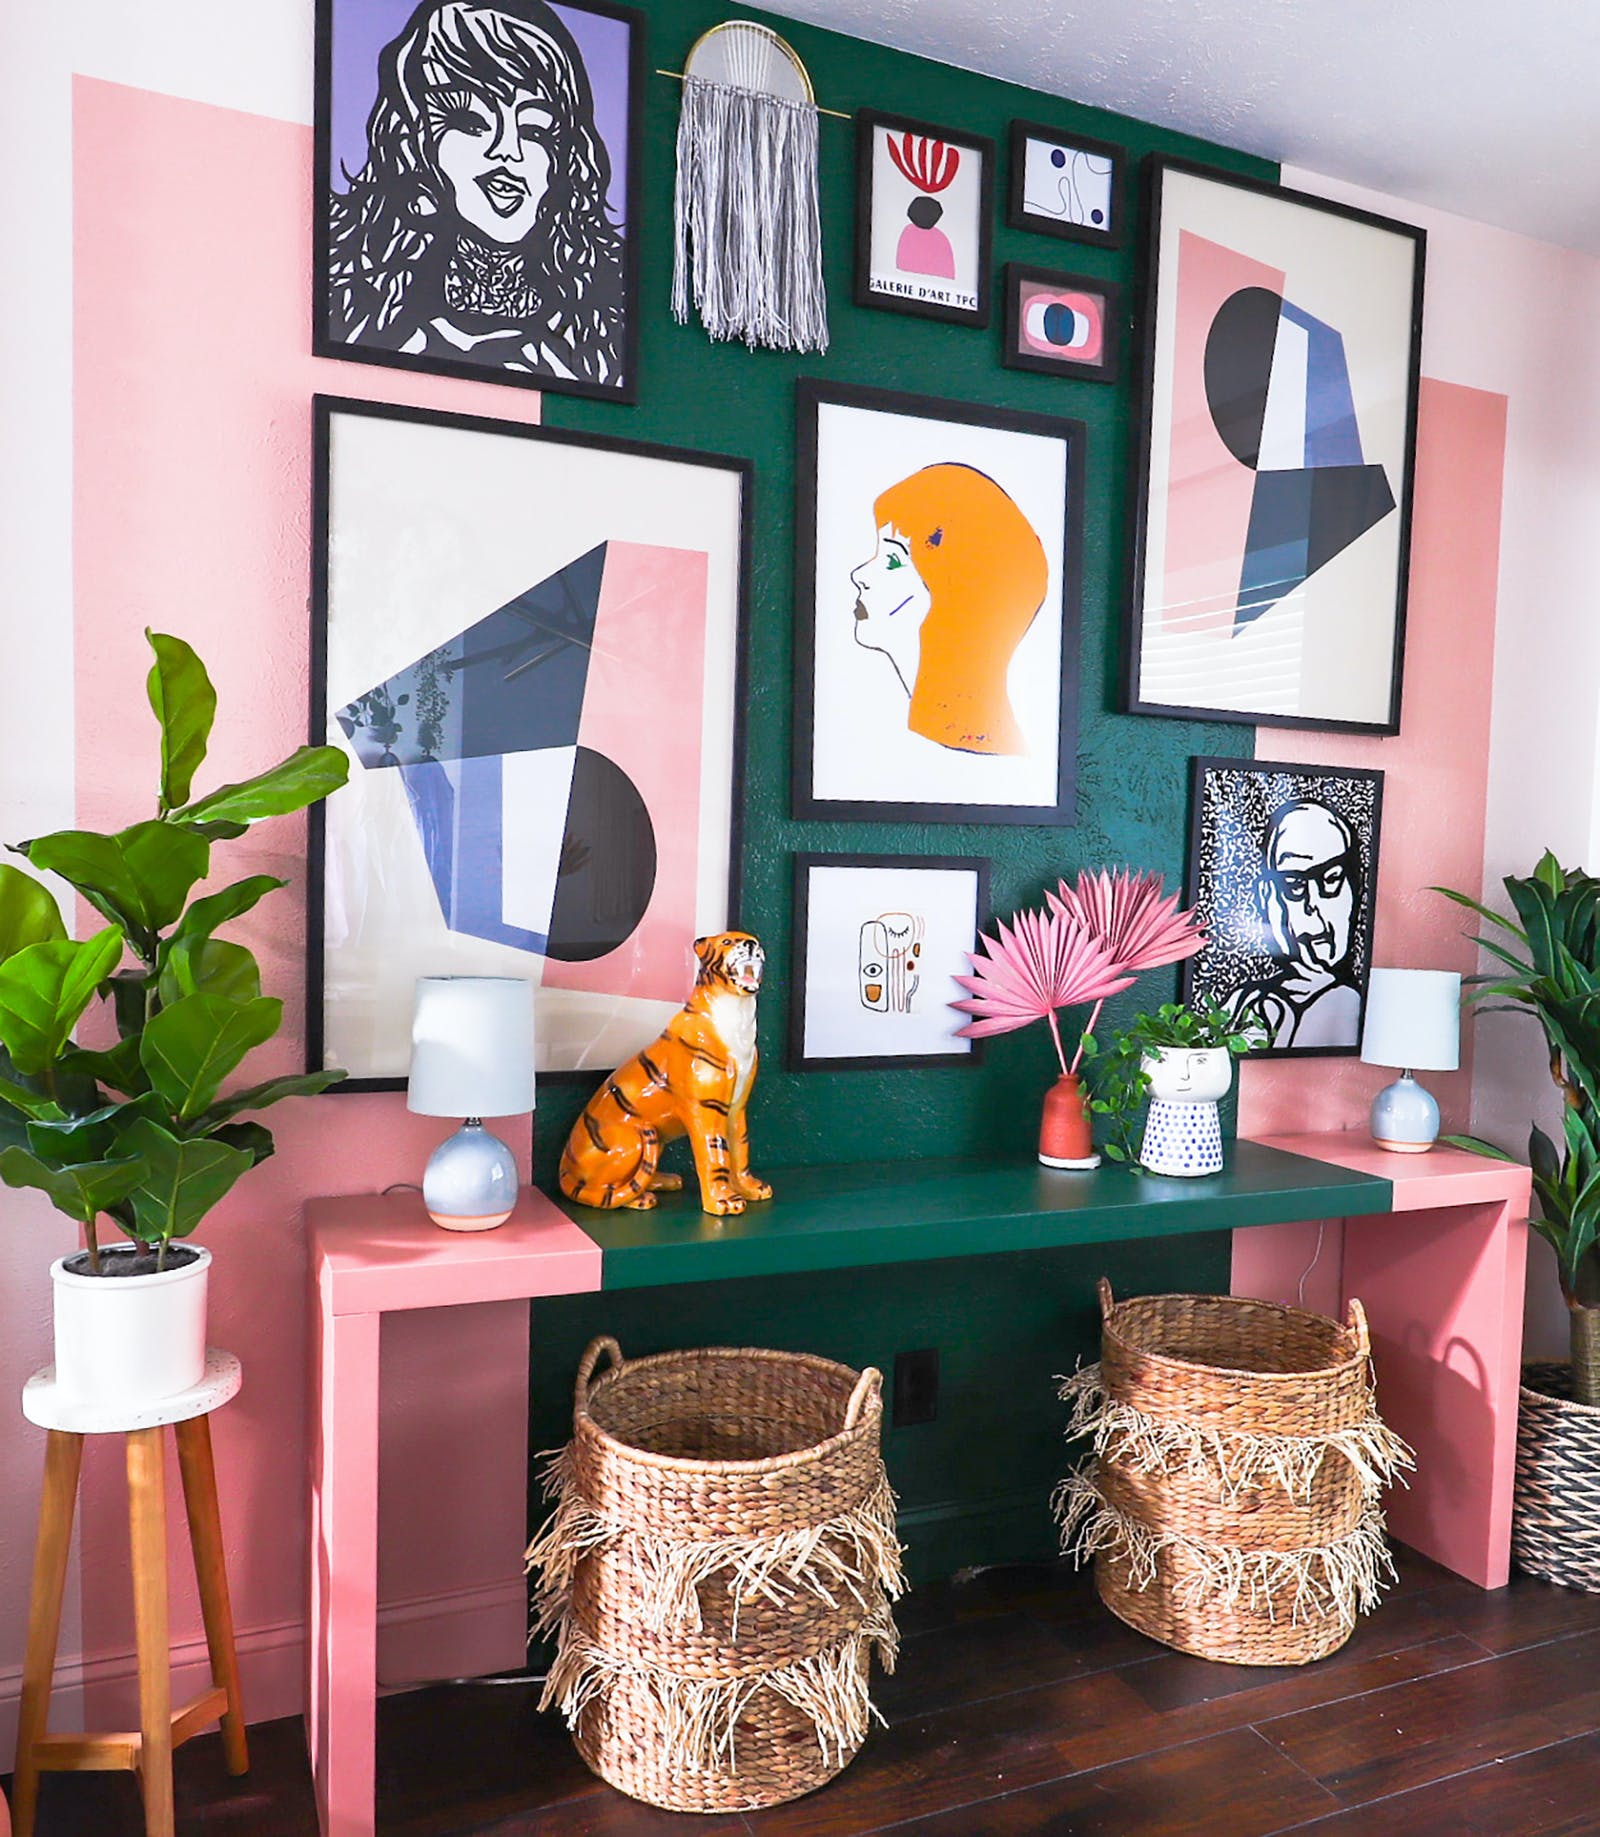 A gallery wall of art work in a vibrant hallway, painted green and pink in geometric shapes